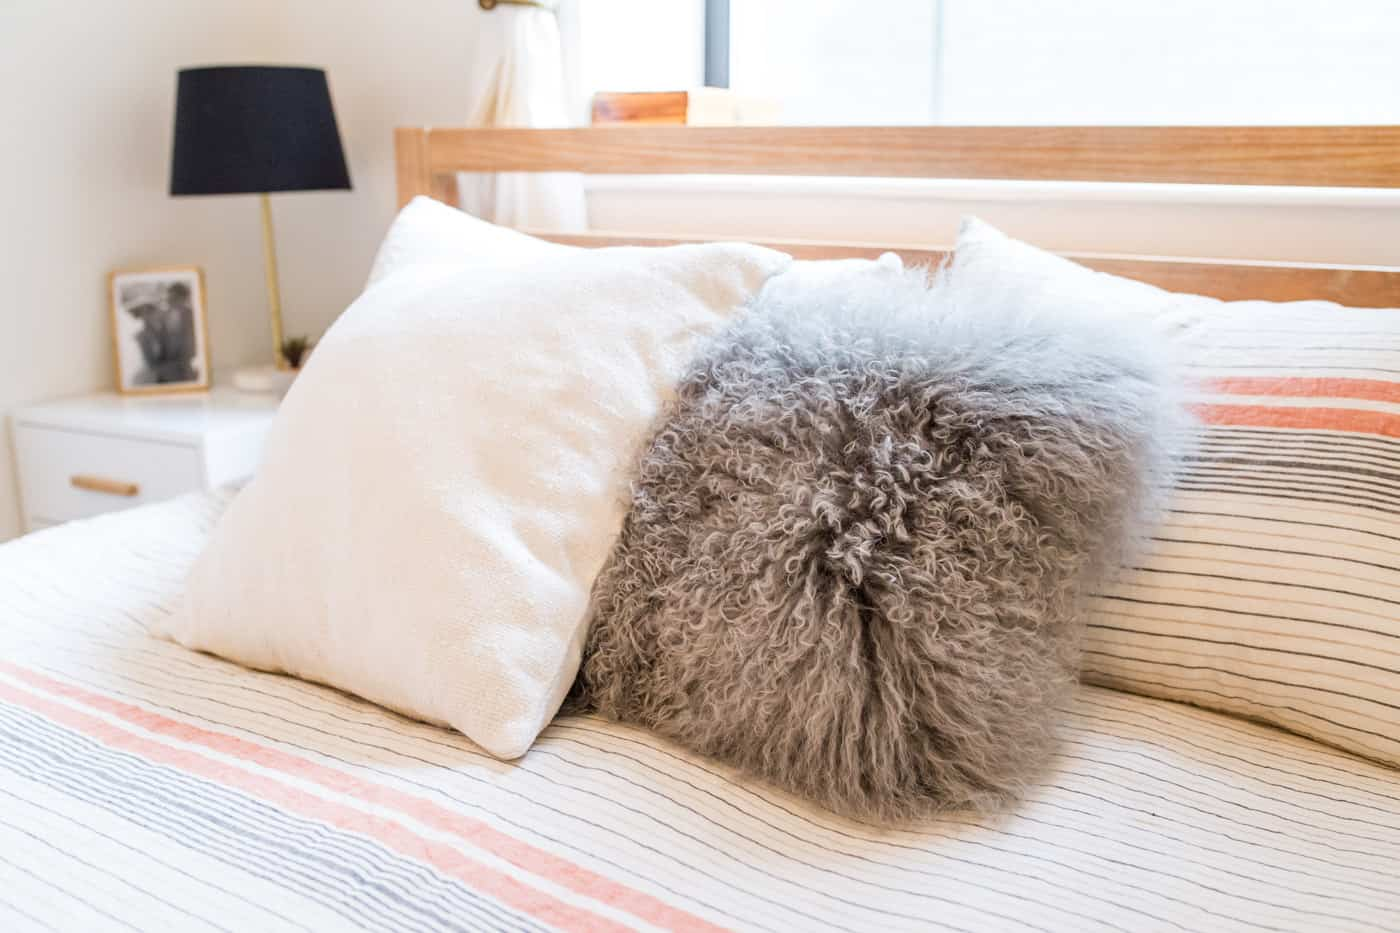 Amazing throw pillows from West Elm